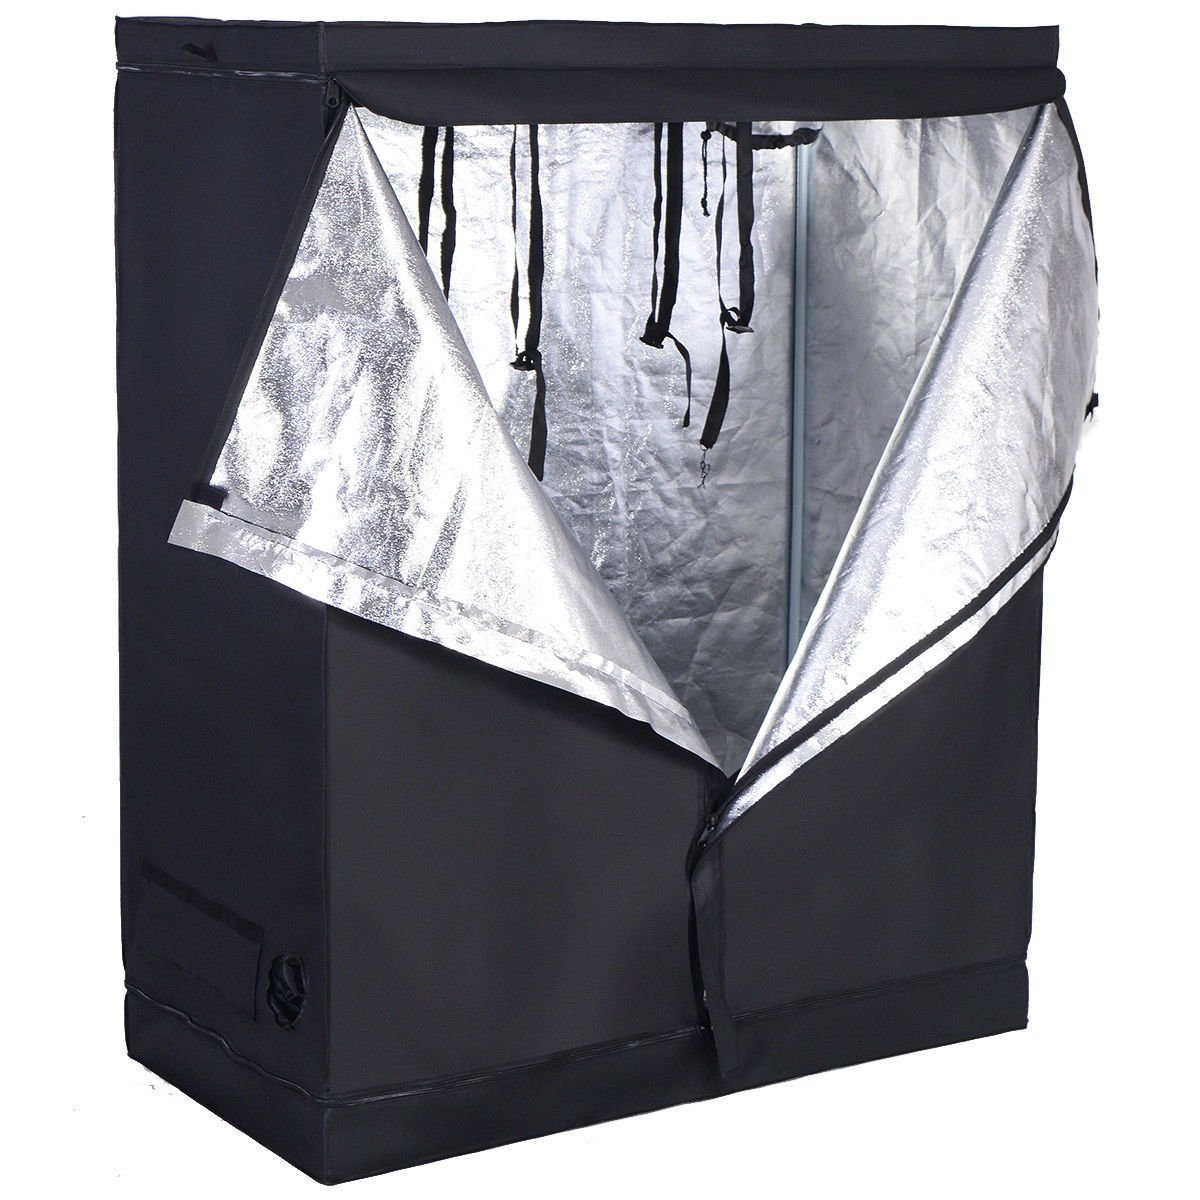 Giantex Plant Growing Tent Indoor Grow Tent Room Reflective Hydroponic Non Toxic Clone Hut 6-Size Indoor Grow Tent (48''X24''X60'')